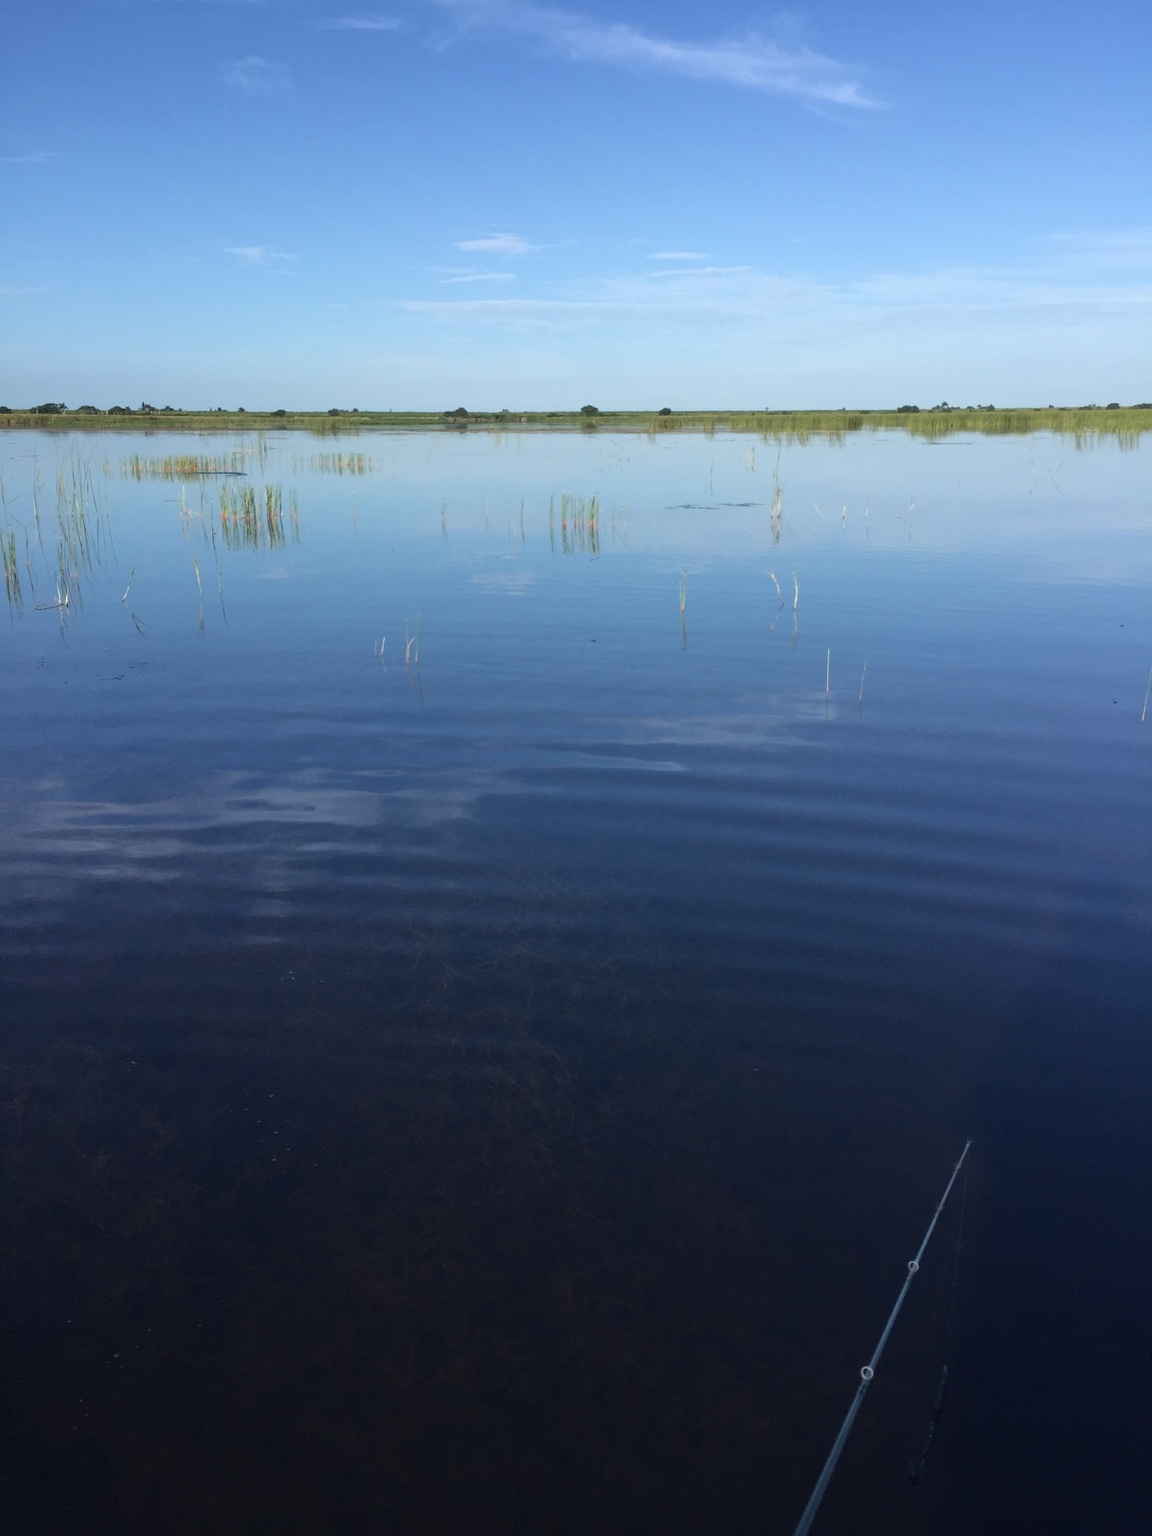 Lake okeechobee slims fish camp and us 27 7 16 16 for Lake okeechobee fish camps